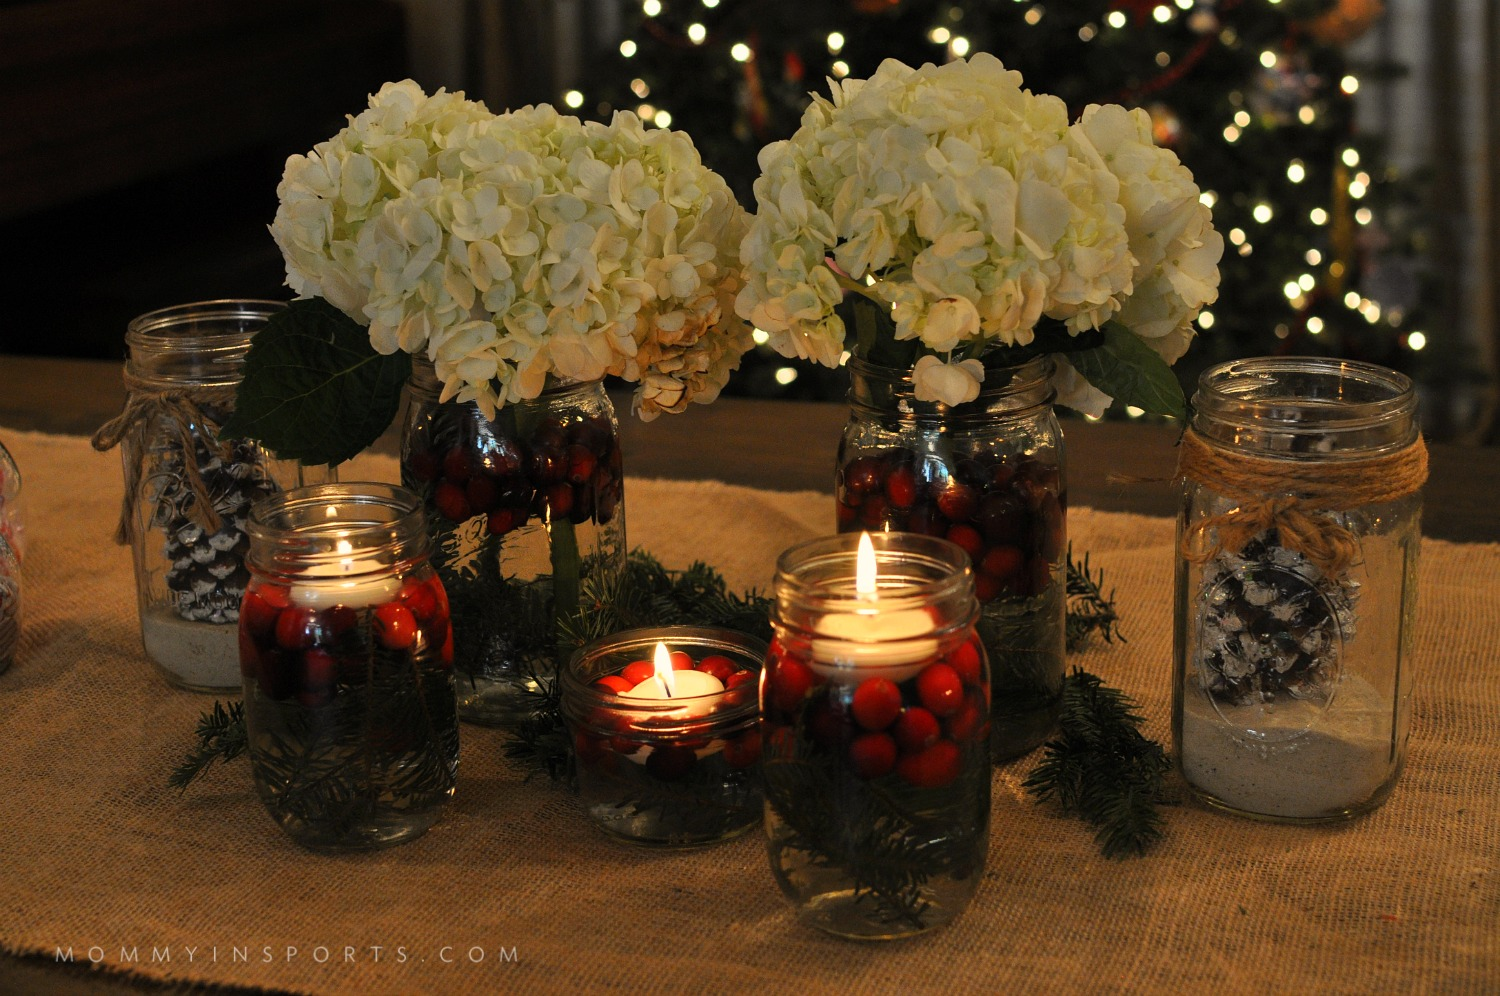 Looking for some cute holiday decor ideas that won't break the bank? Try one of these 4 Easy DIY Holiday Projects! Your home will be merry & bright!